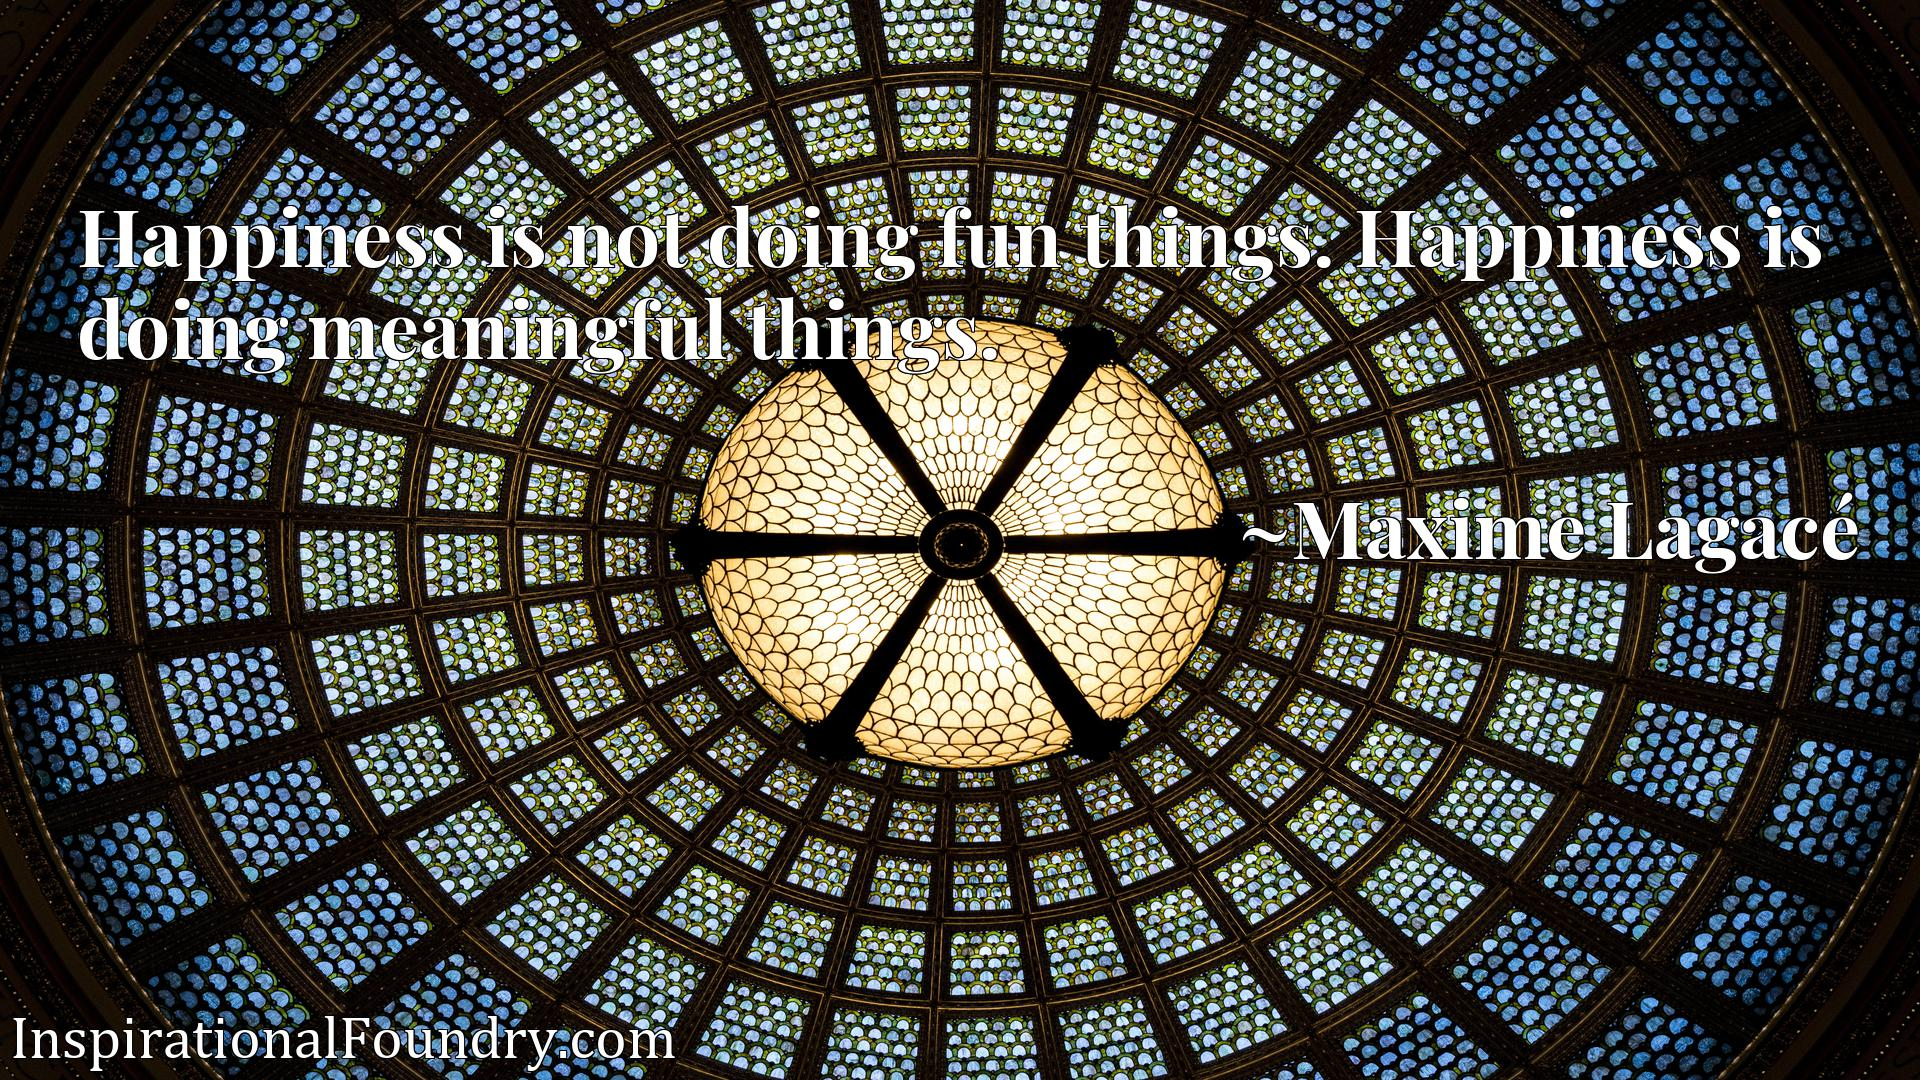 Happiness is not doing fun things. Happiness is doing meaningful things.